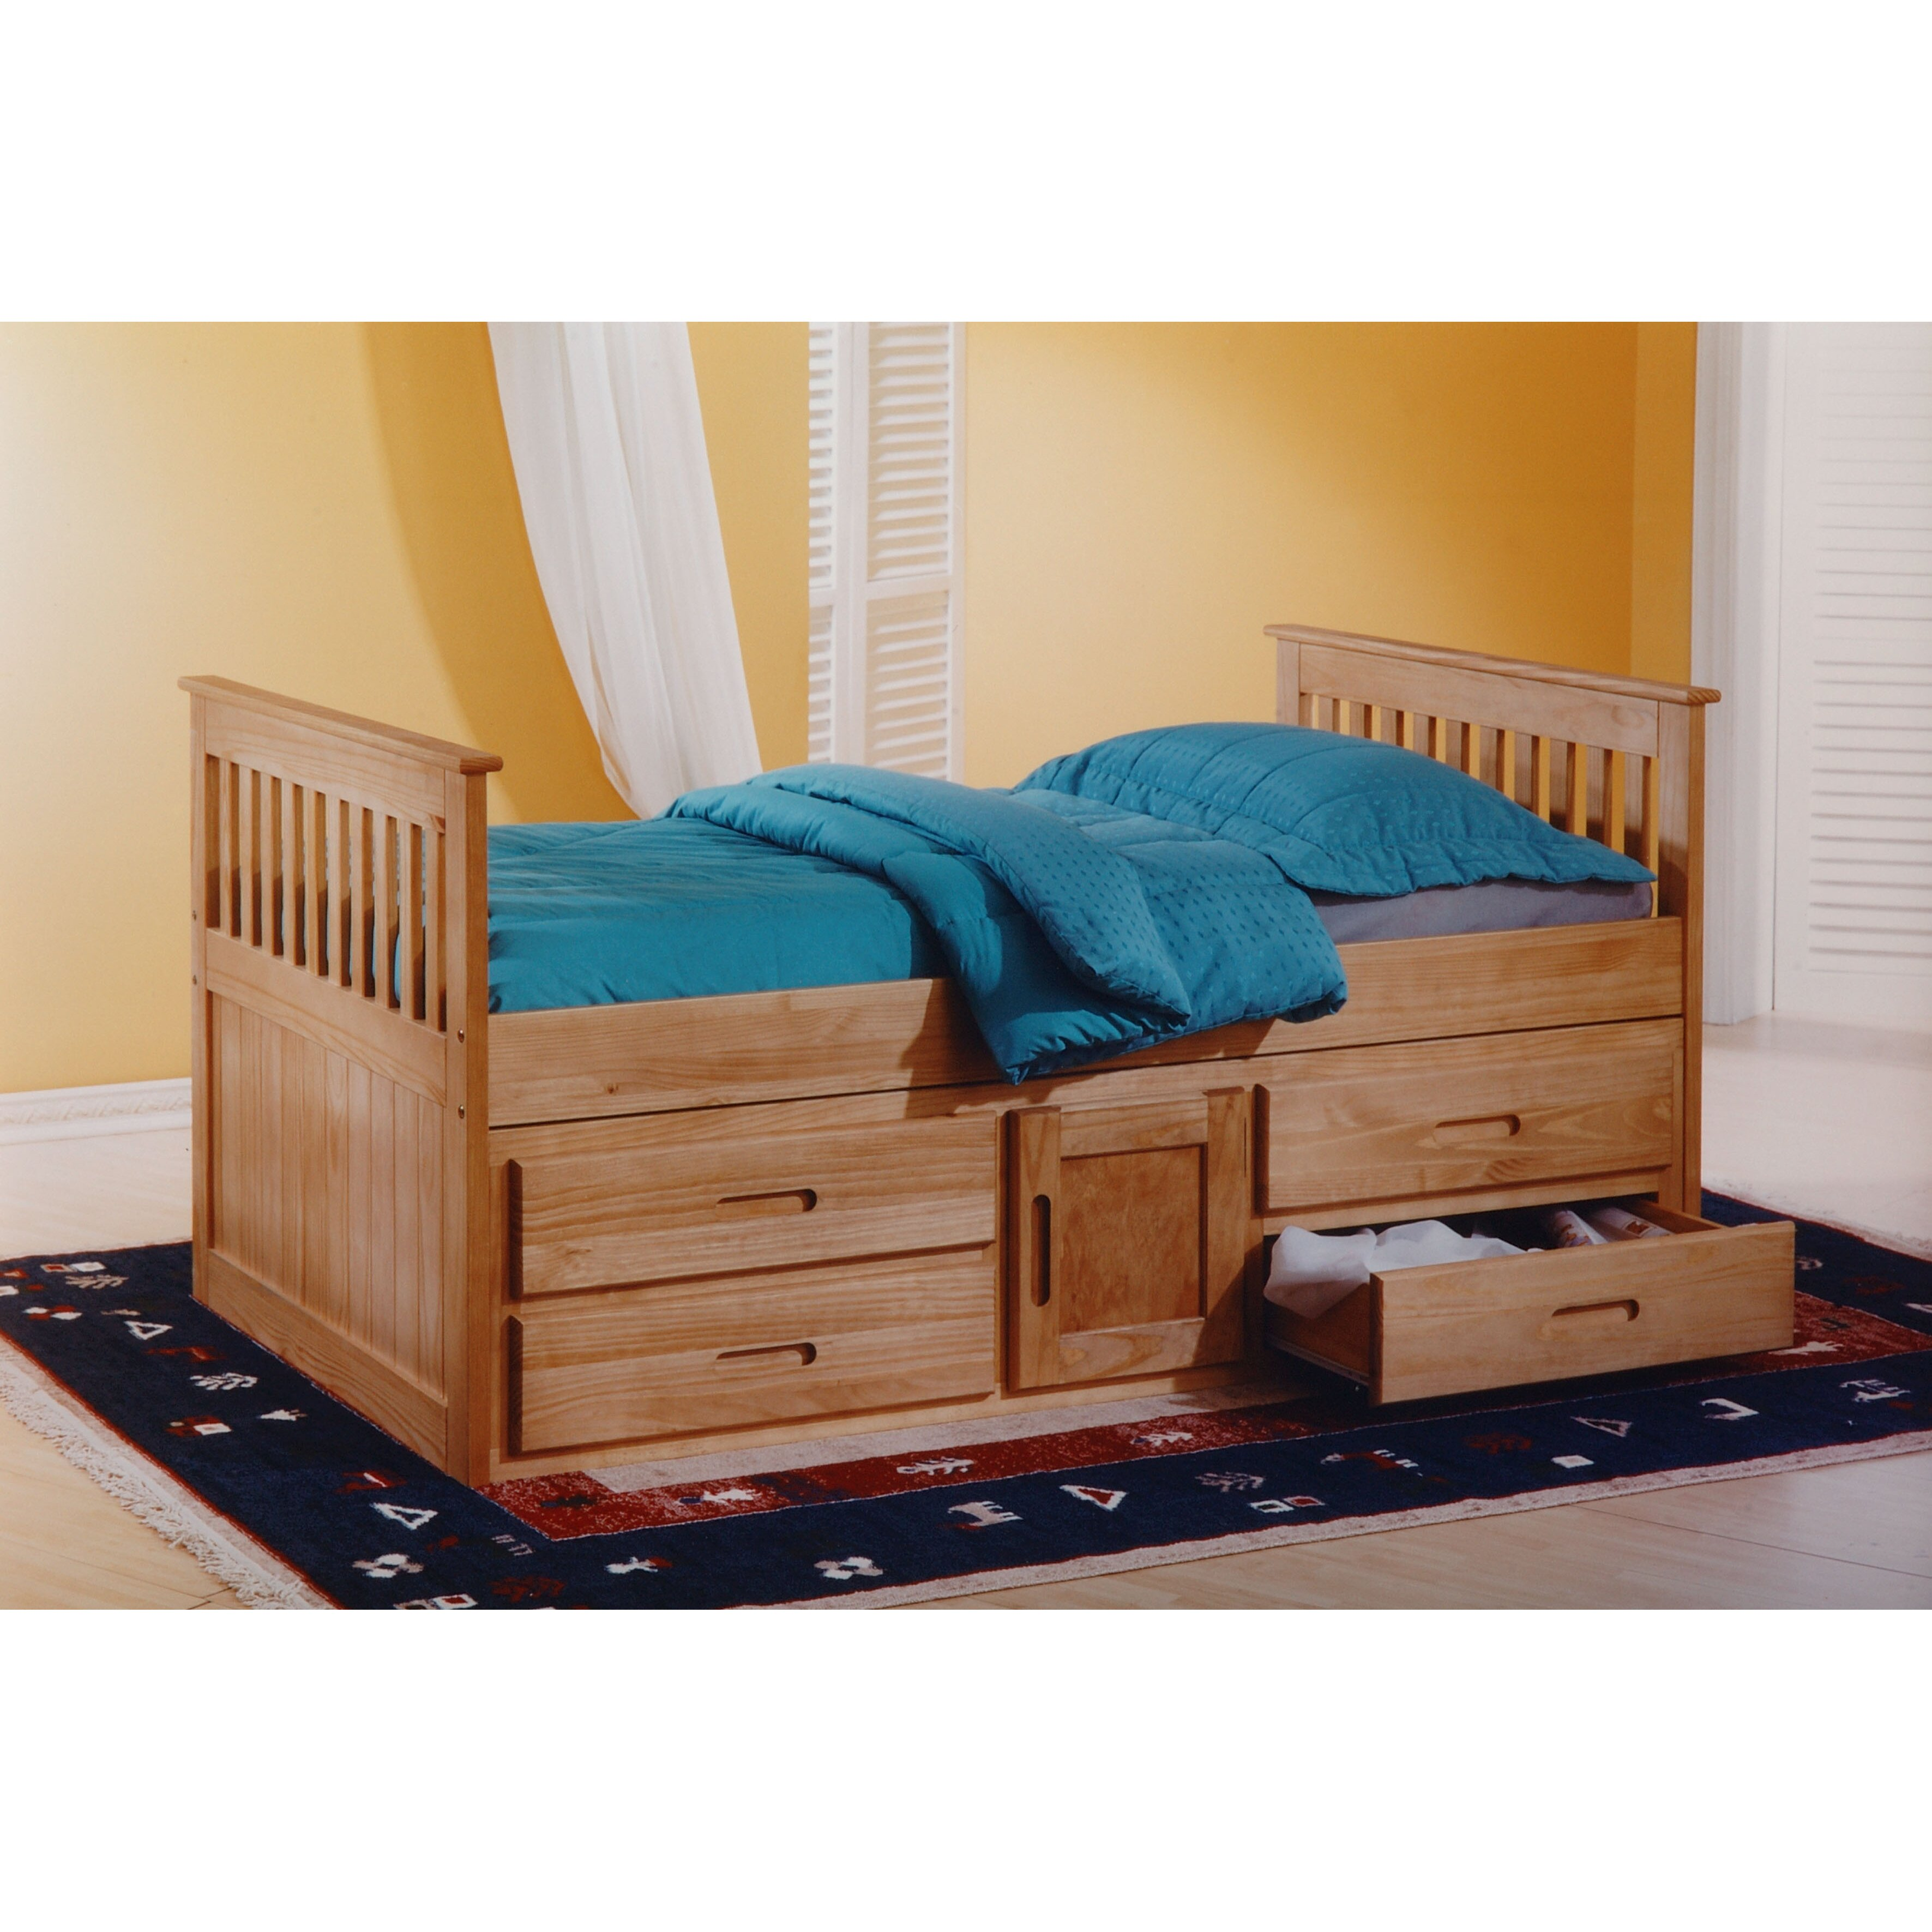 Cheap Double Beds For Sale In Bristol